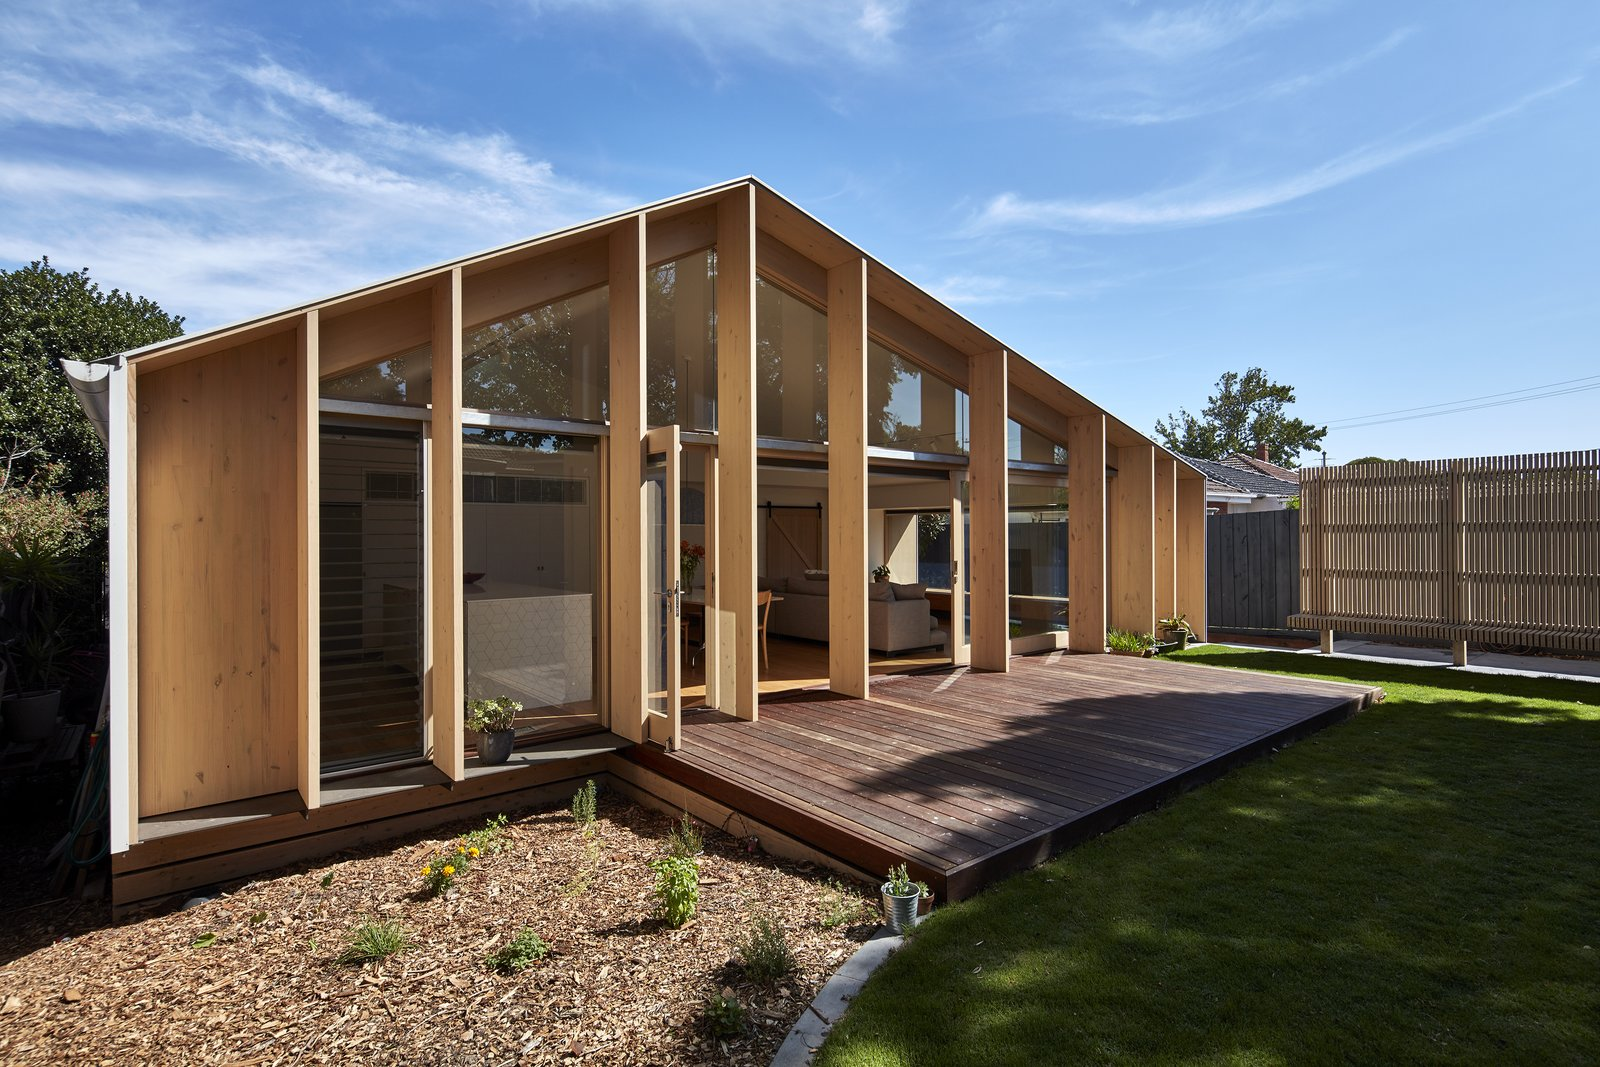 The pitched roof reduces the extension's surface area to 12 percent less than that of a flat-roofed extension, creating a more compact building envelope—which translates to less material needed for construction and less space to heat or cool.